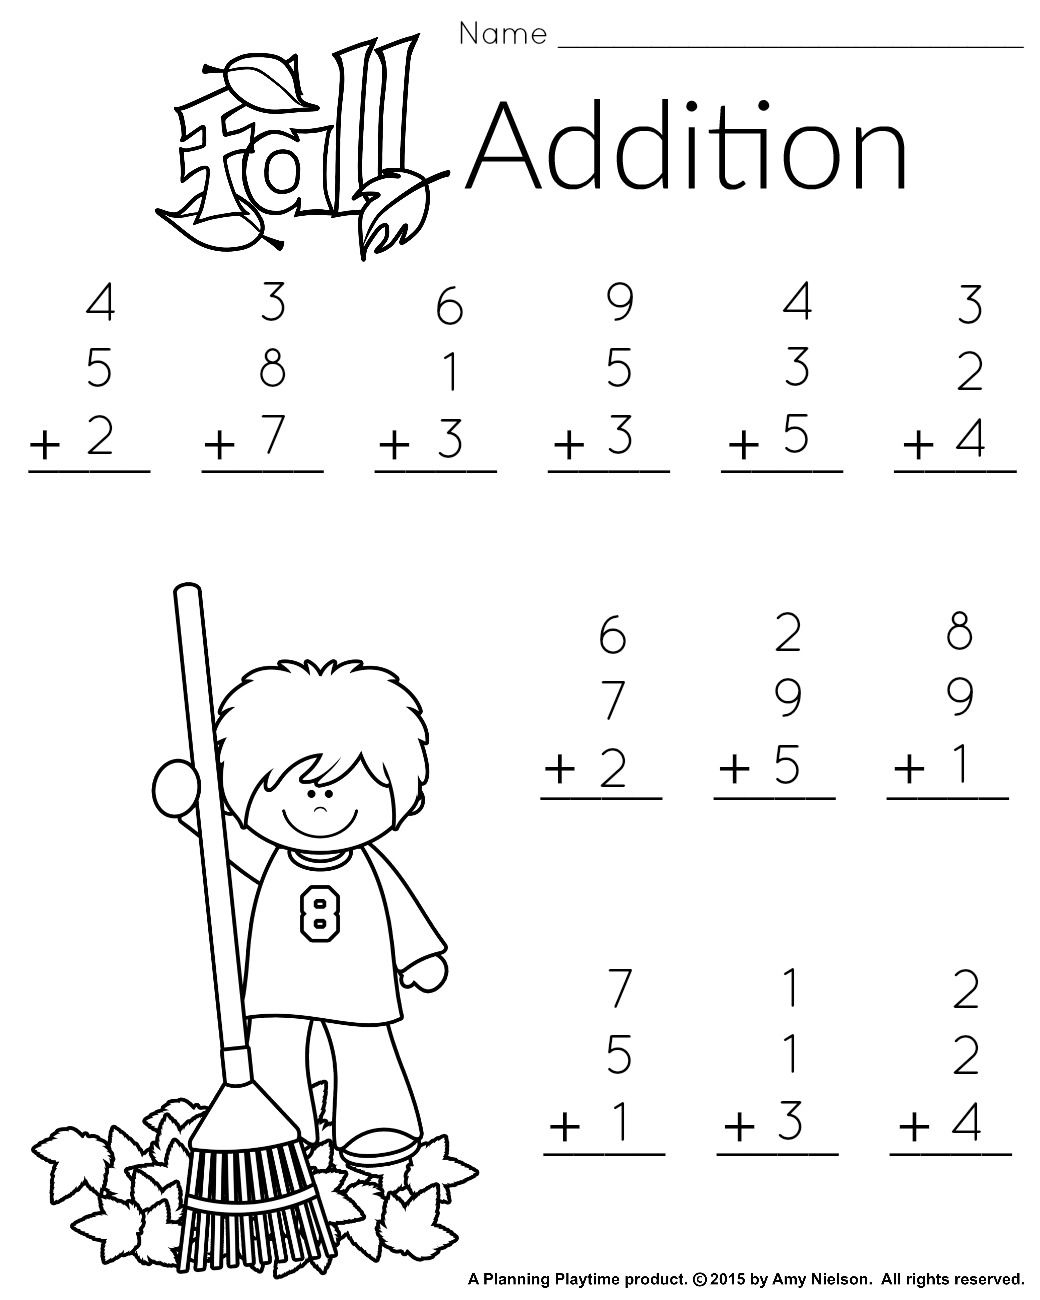 1St Grade Math And Literacy Worksheets With A Freebie - Free Printable Addition Worksheets For 1St Grade